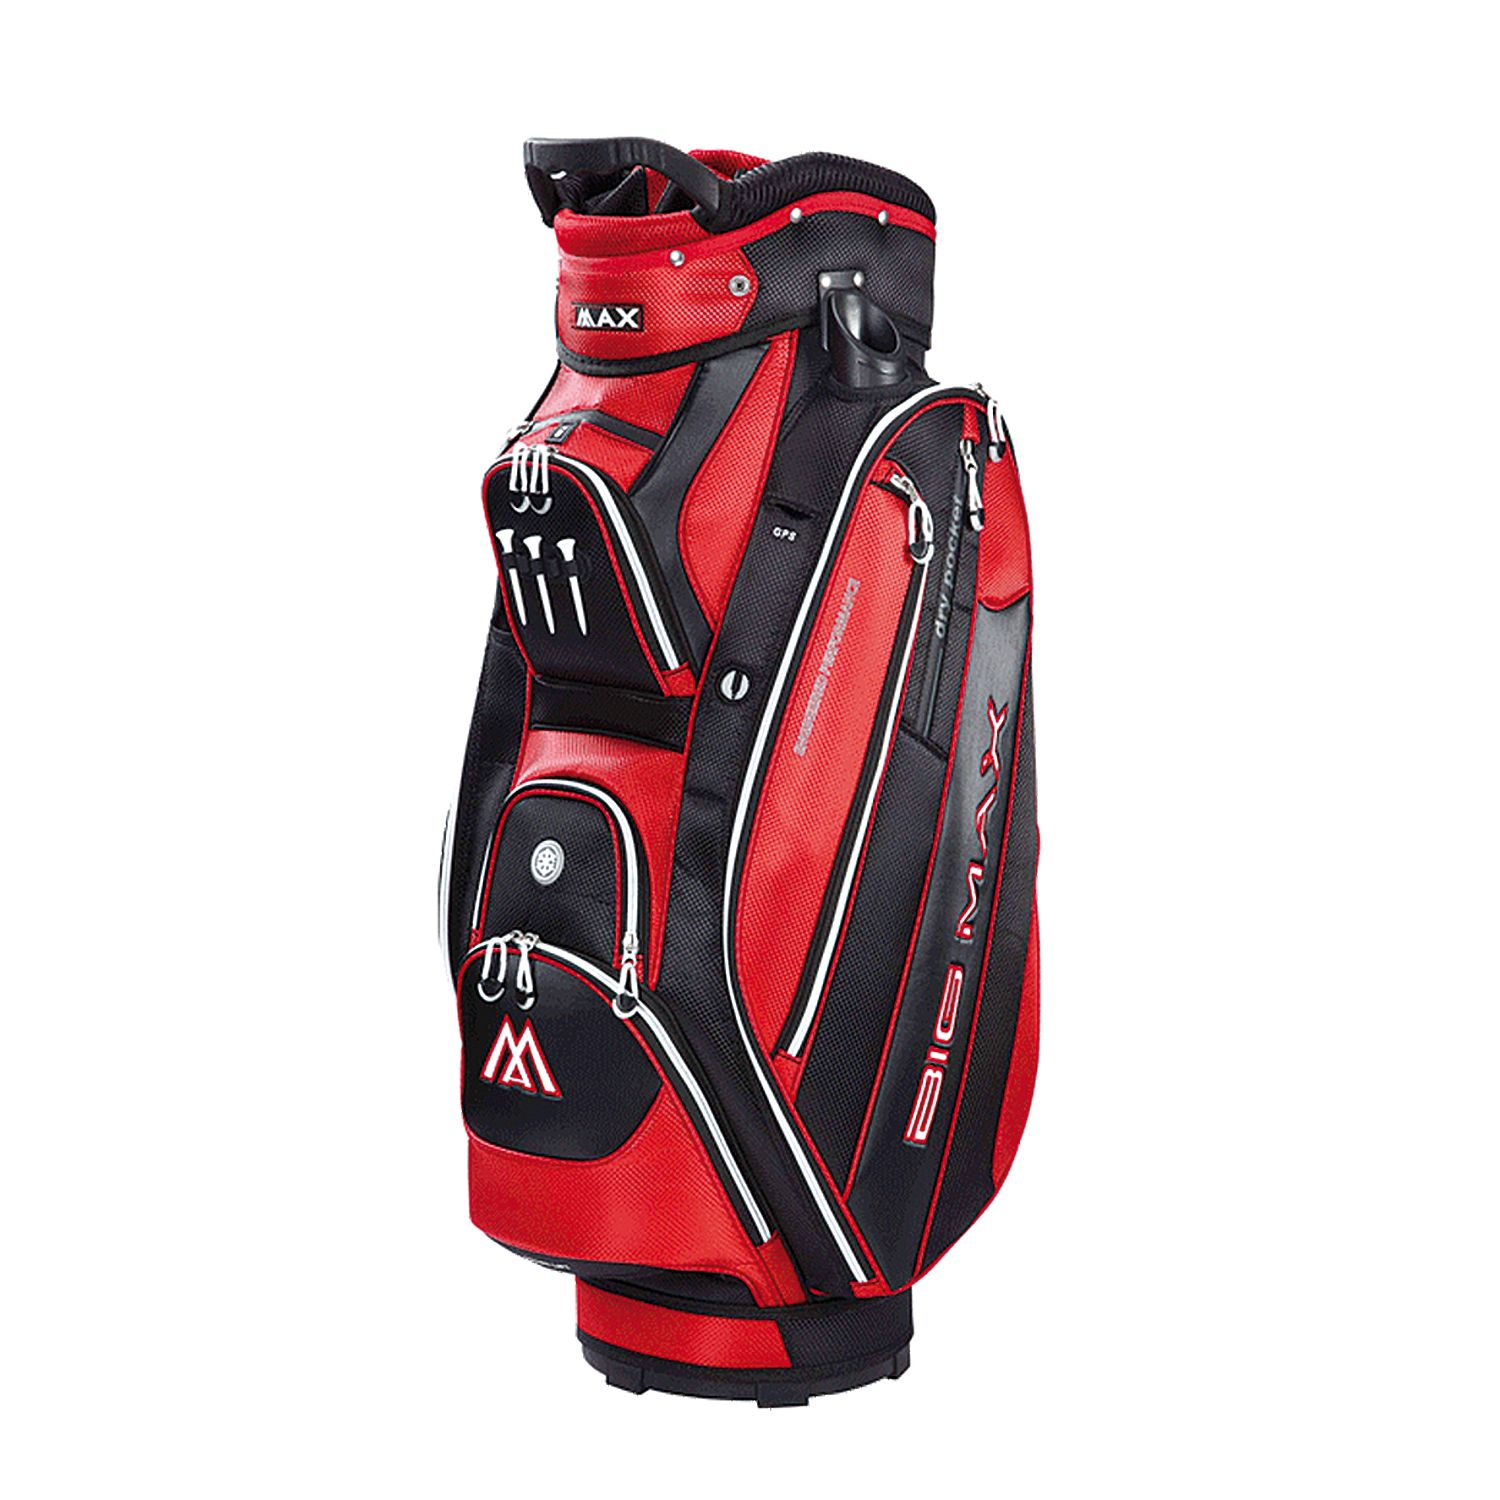 Big Max Terra 5 Plus Golf Cart Bag Sweatband Com